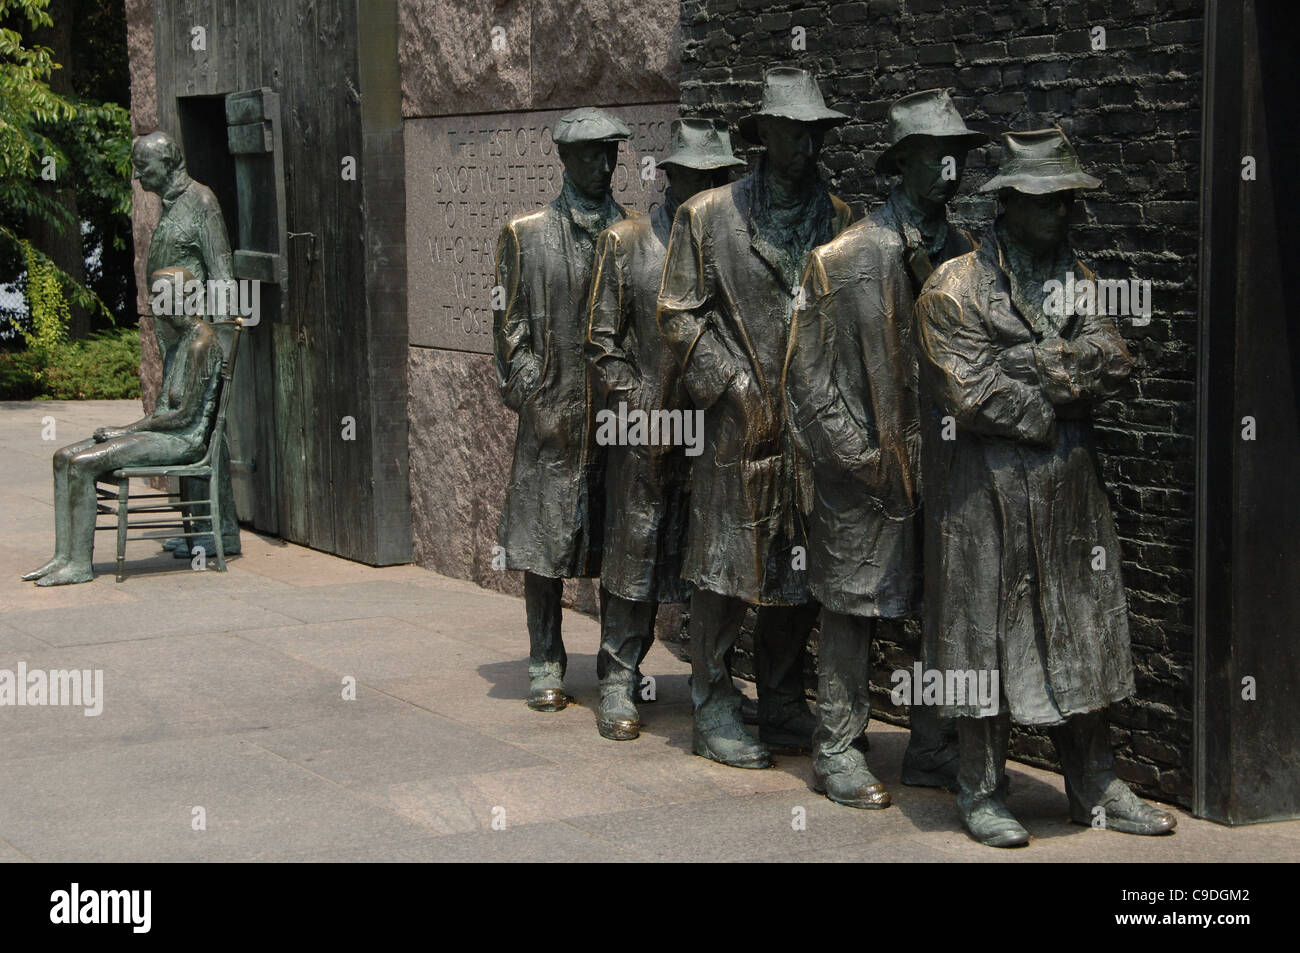 Franklin Delano Roosevelt Memorial. Bronze statues that depict the Great Depression. Waiting in a bread line by - Stock Image